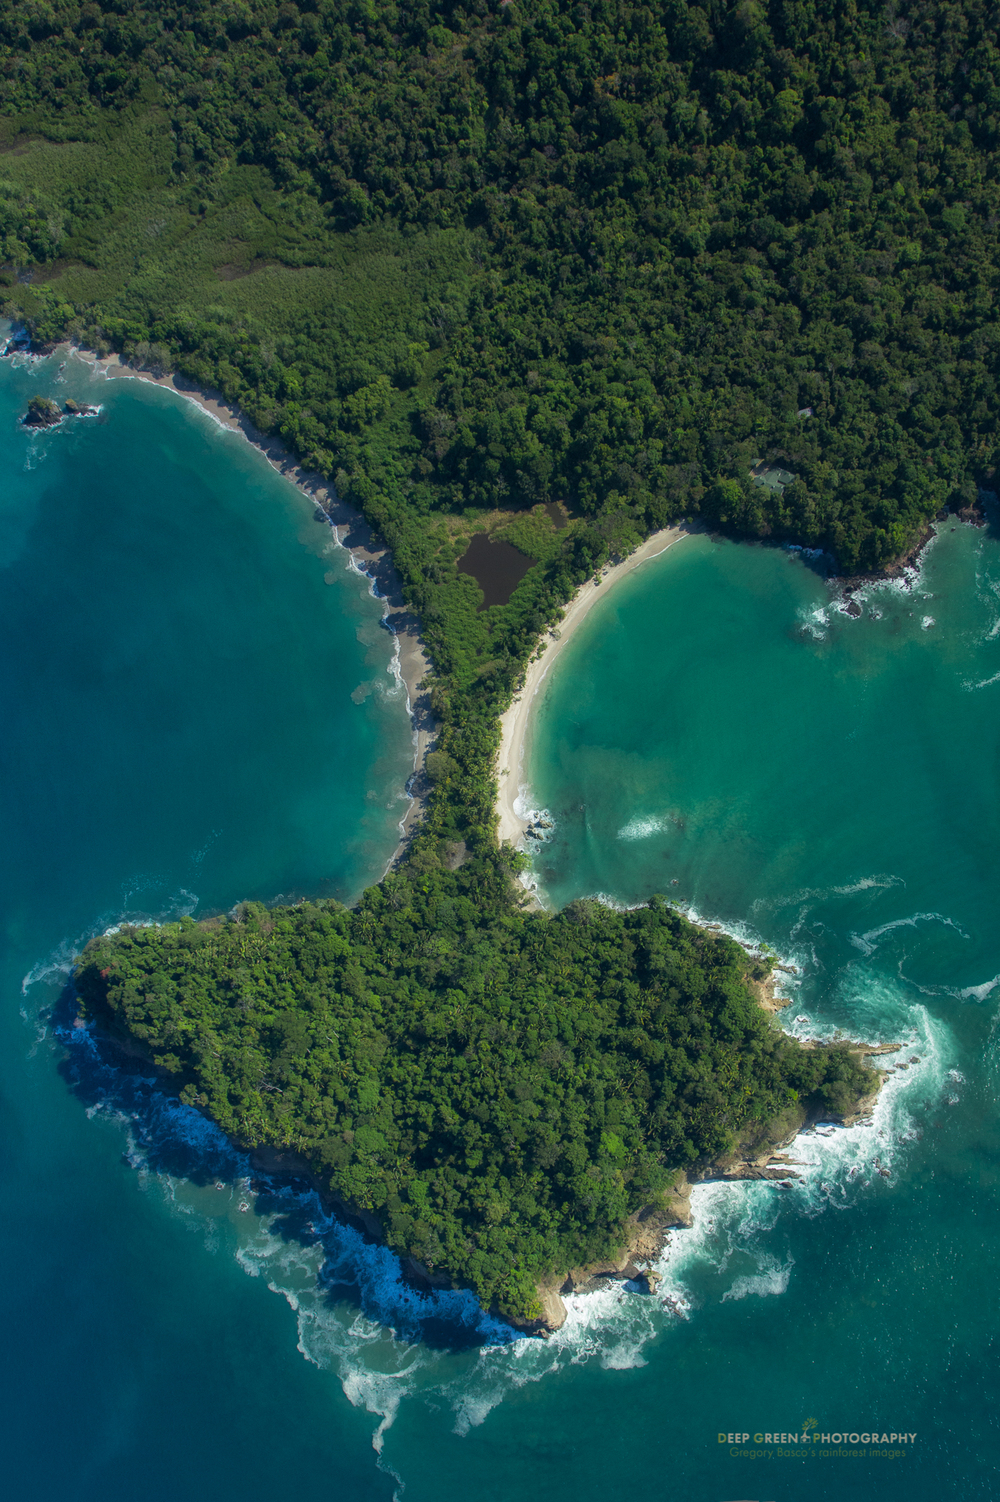 Aerial view of Costa Rica's famed Manuel Antonio National Park